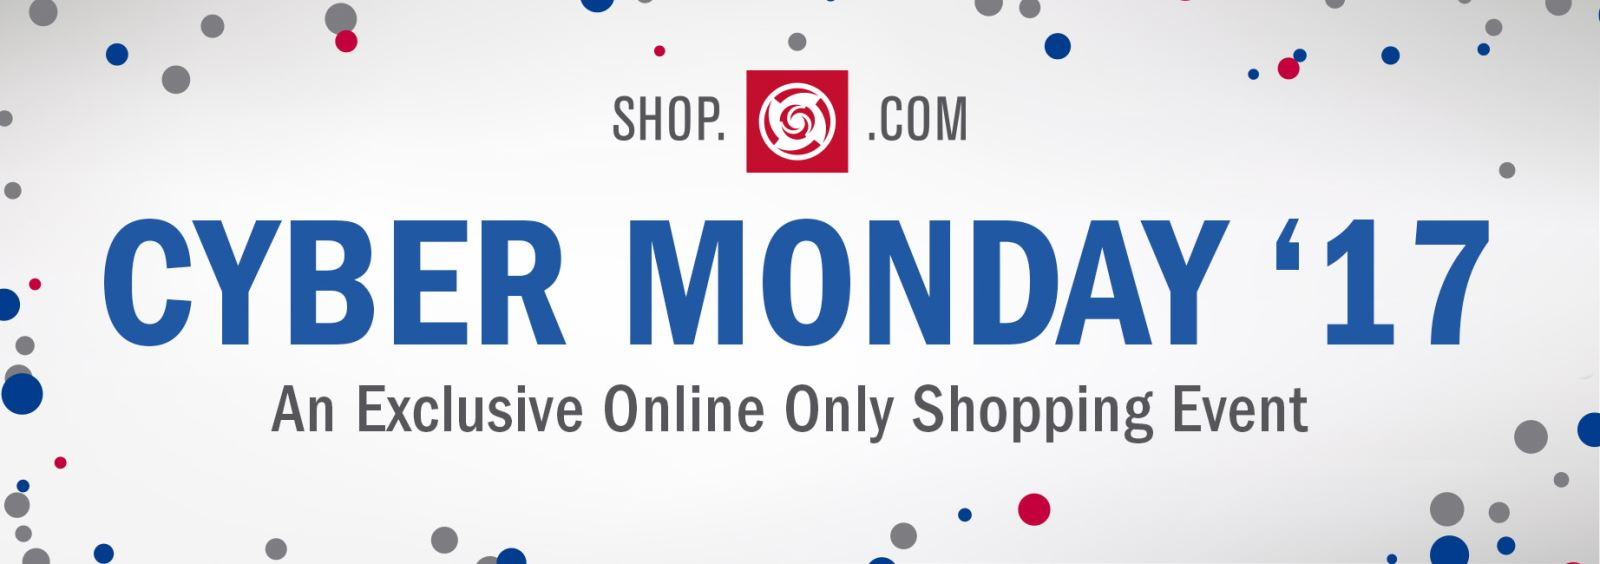 Cyber Monday '17. An Exclusive Online Shopping Event with BrasselerUSA.